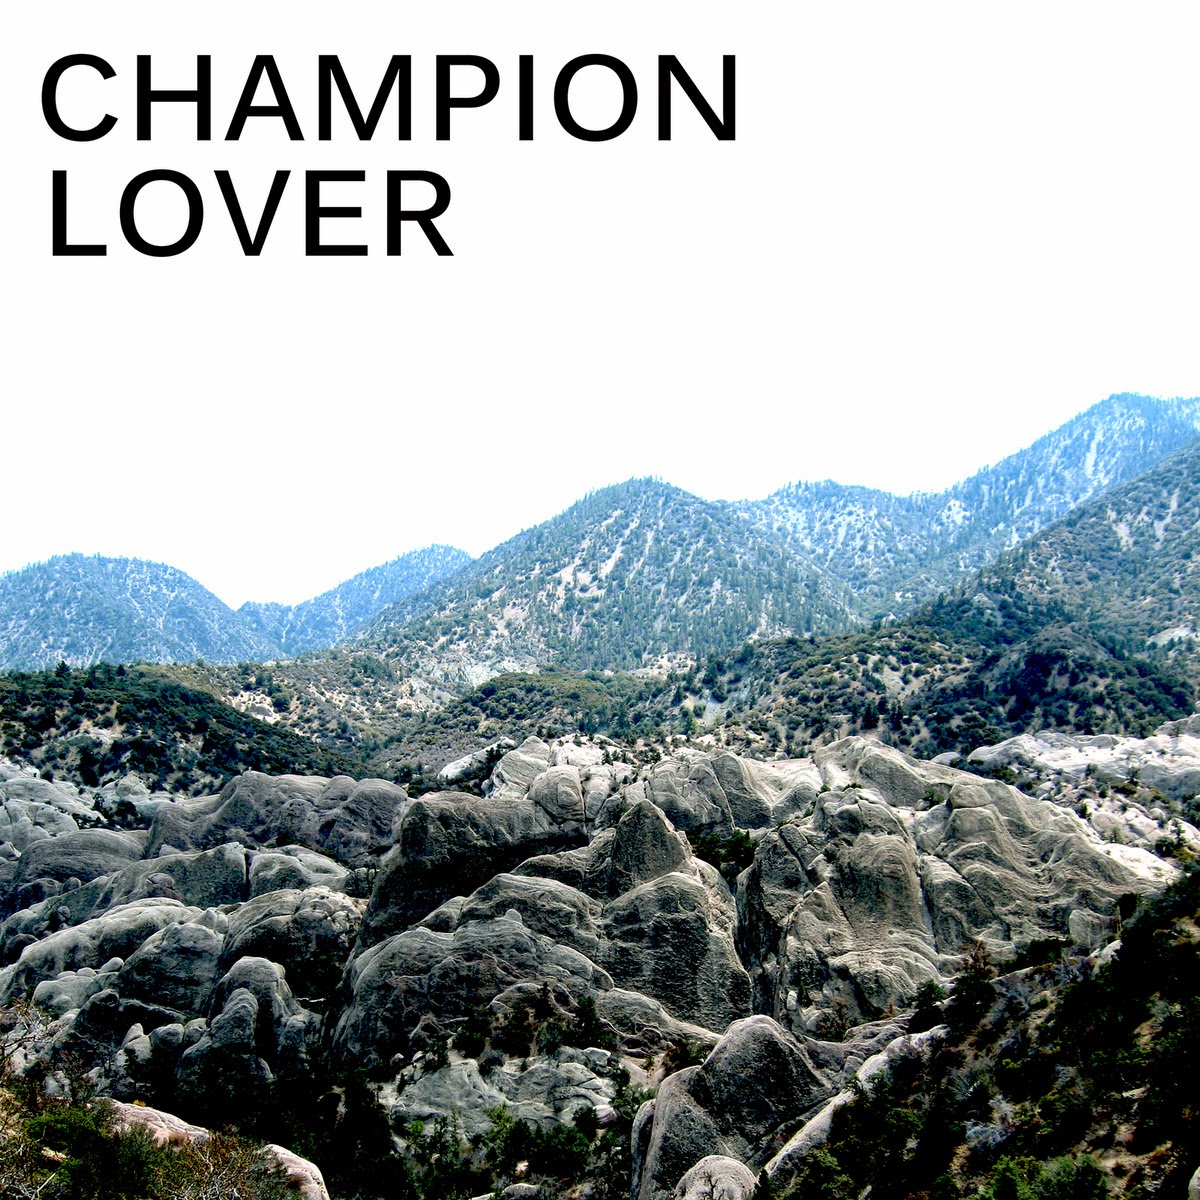 http://www.d4am.net/2014/06/champion-lover-champion-lover.html